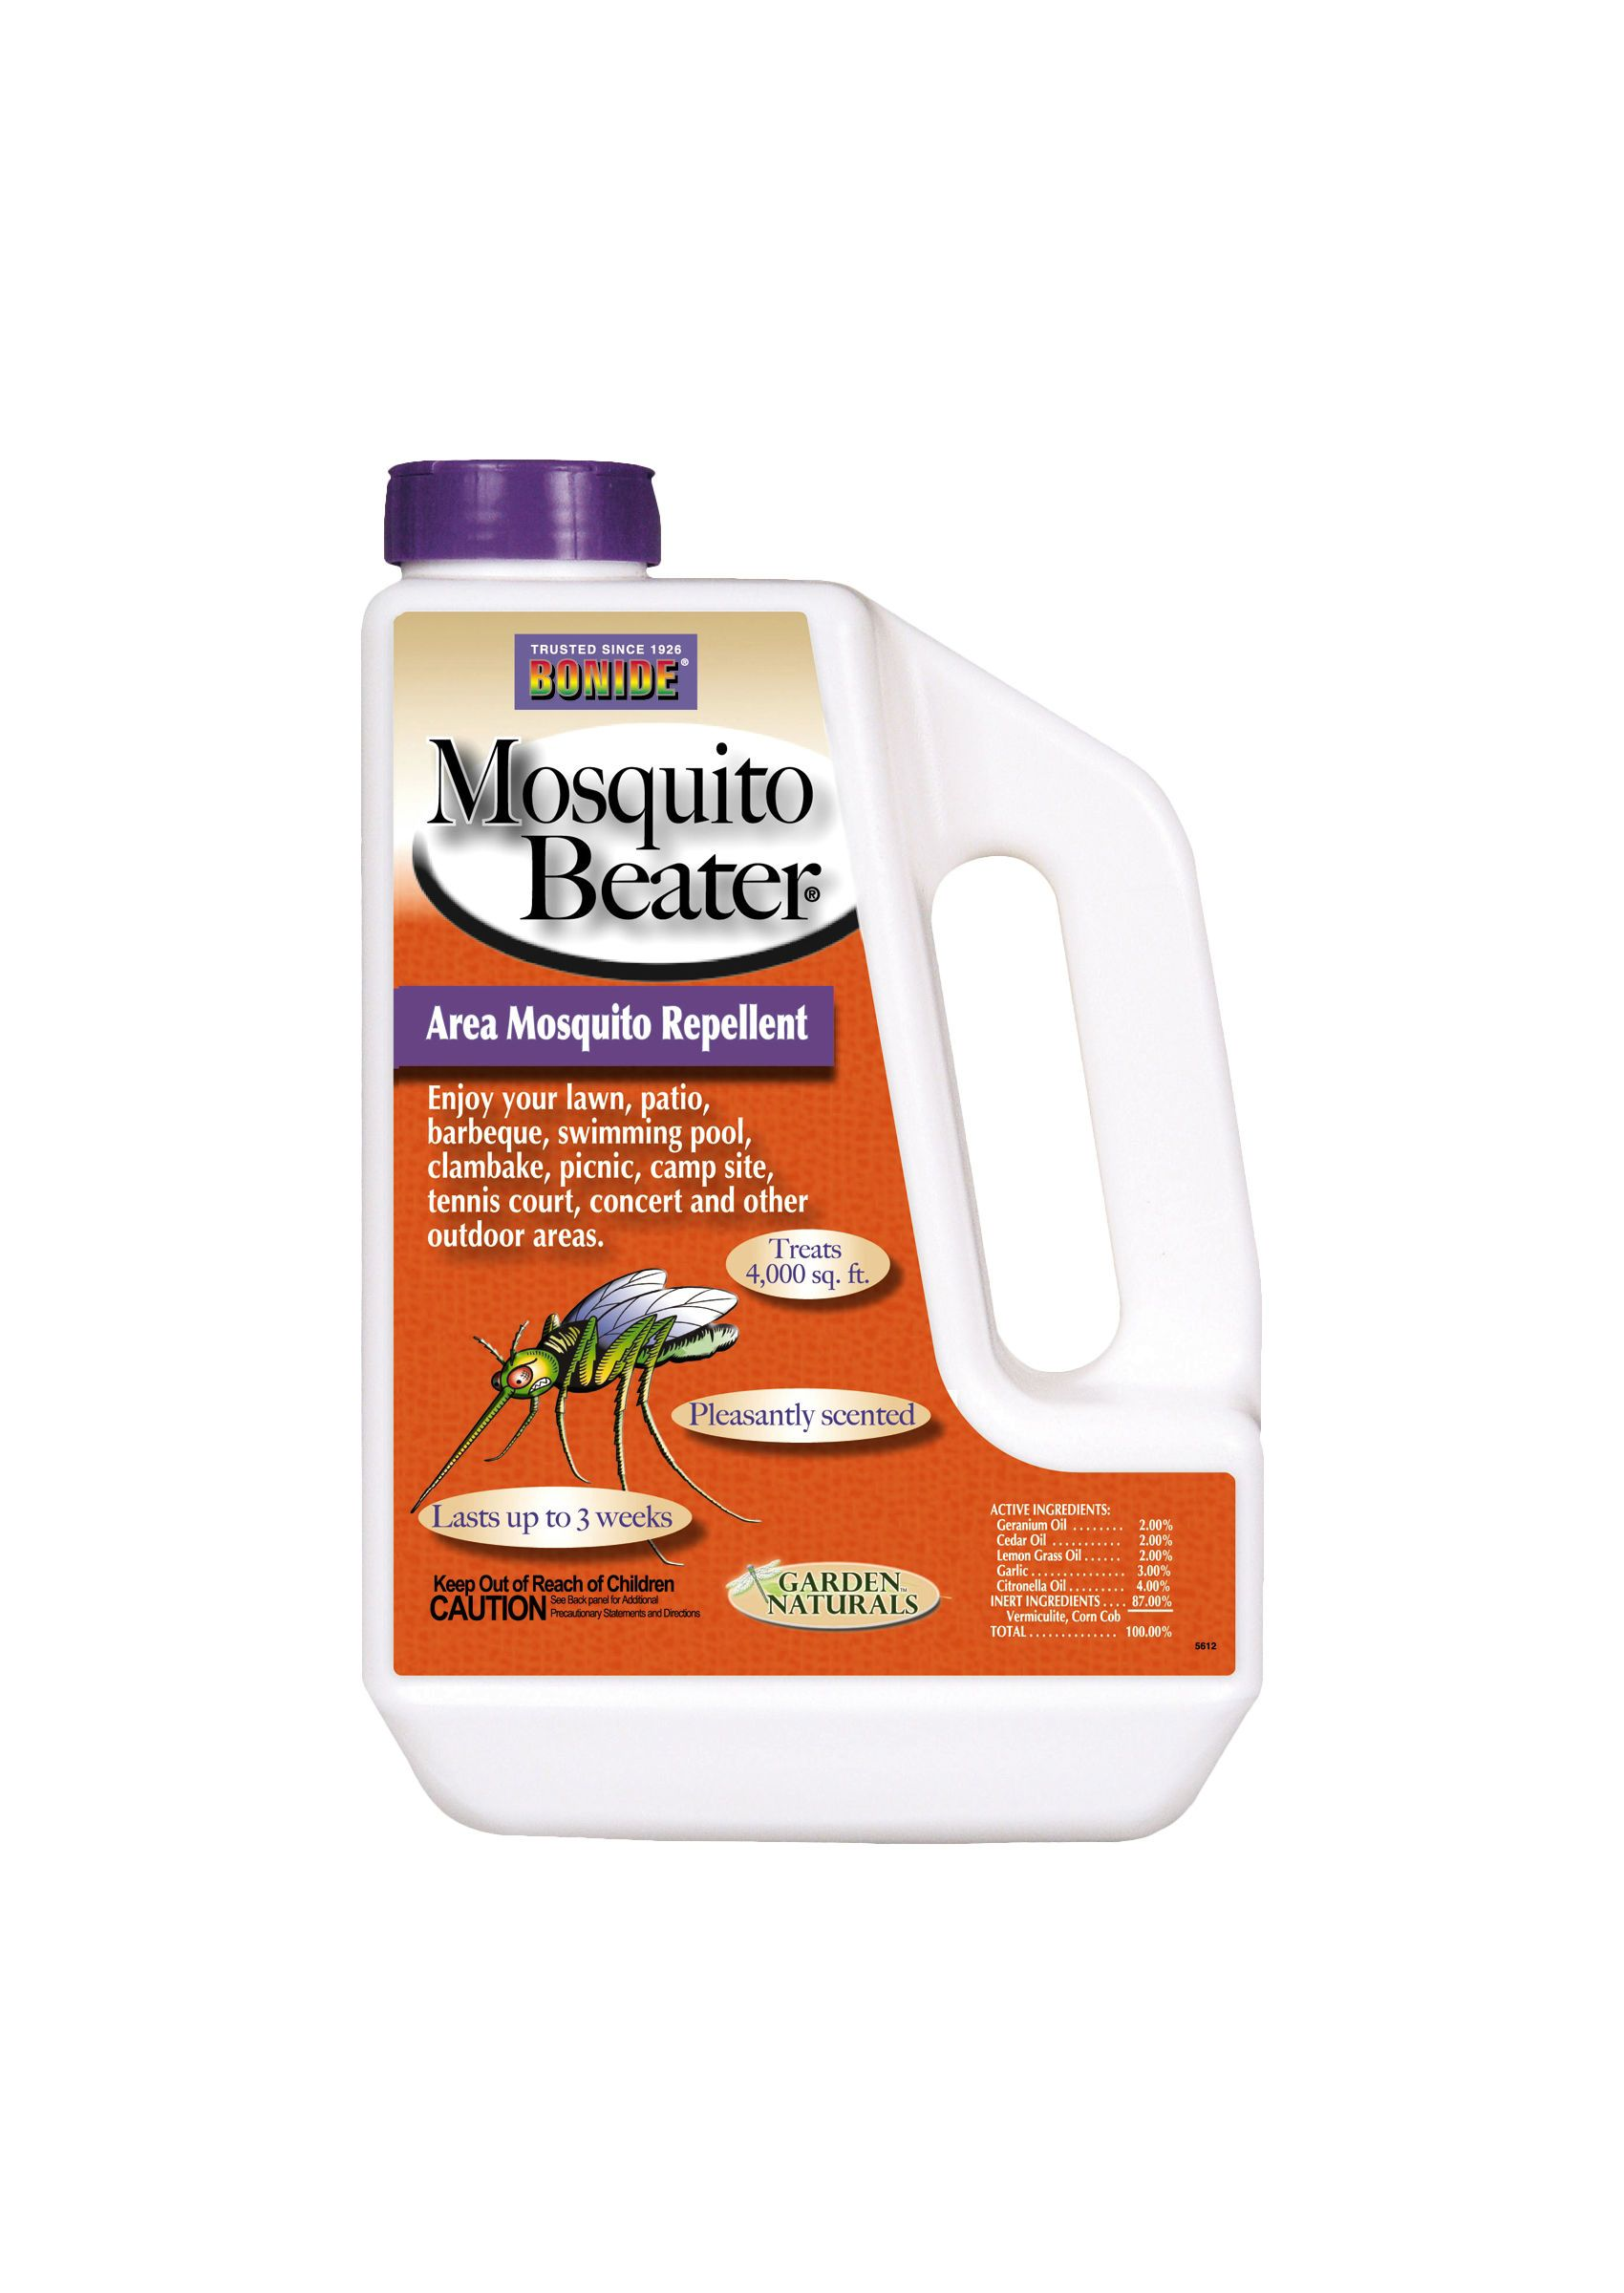 mosquito beater repellent by bonide gardeners com plants